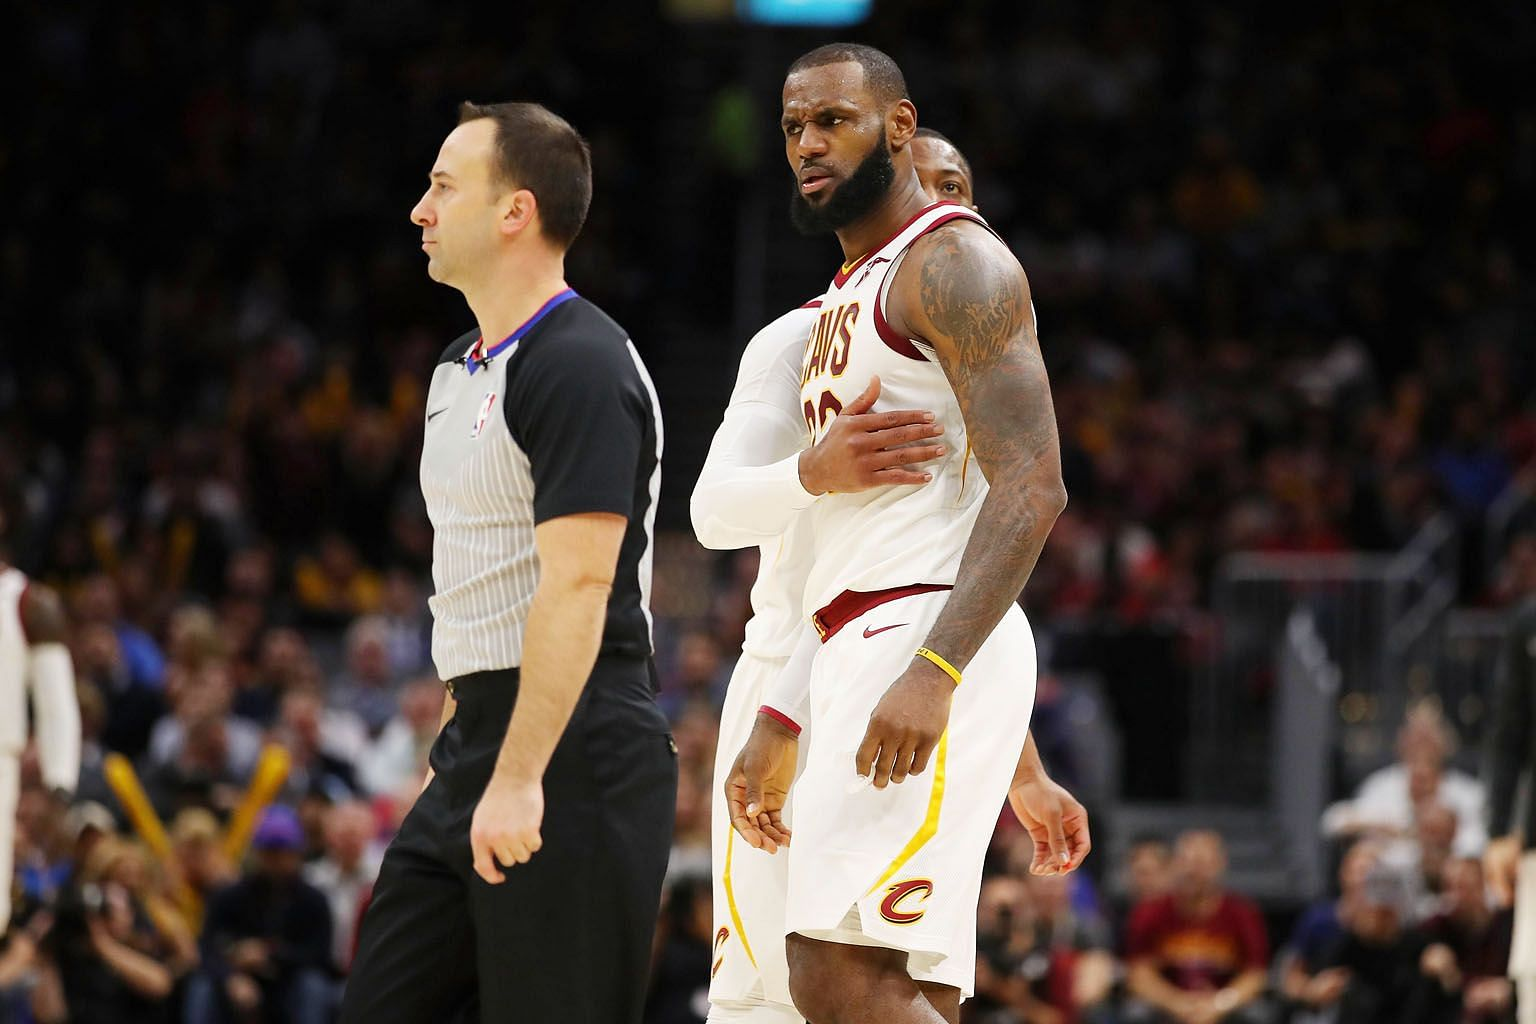 Cleveland Cavaliers' LeBron James, who had 21 points, 12 rebounds, six assists and five steals, arguing with referee Kane Fitzgerald after being ejected near the end of the third quarter against the Miami Heat at Quicken Loans Arena.